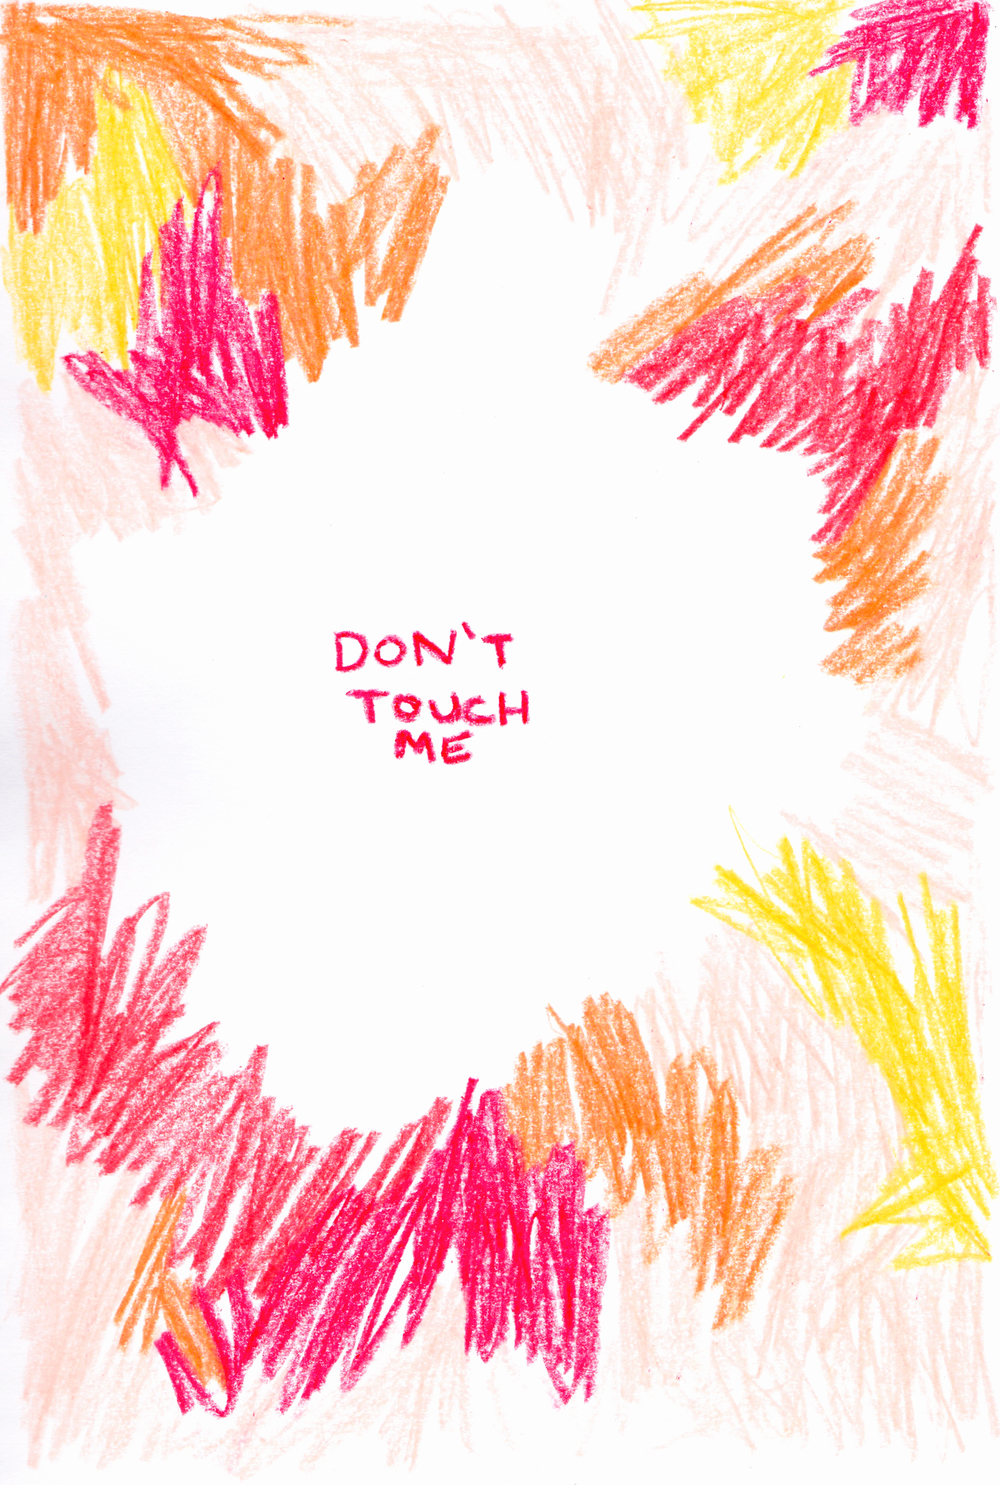 Don't Touch Me. Crayon drawing on paper.